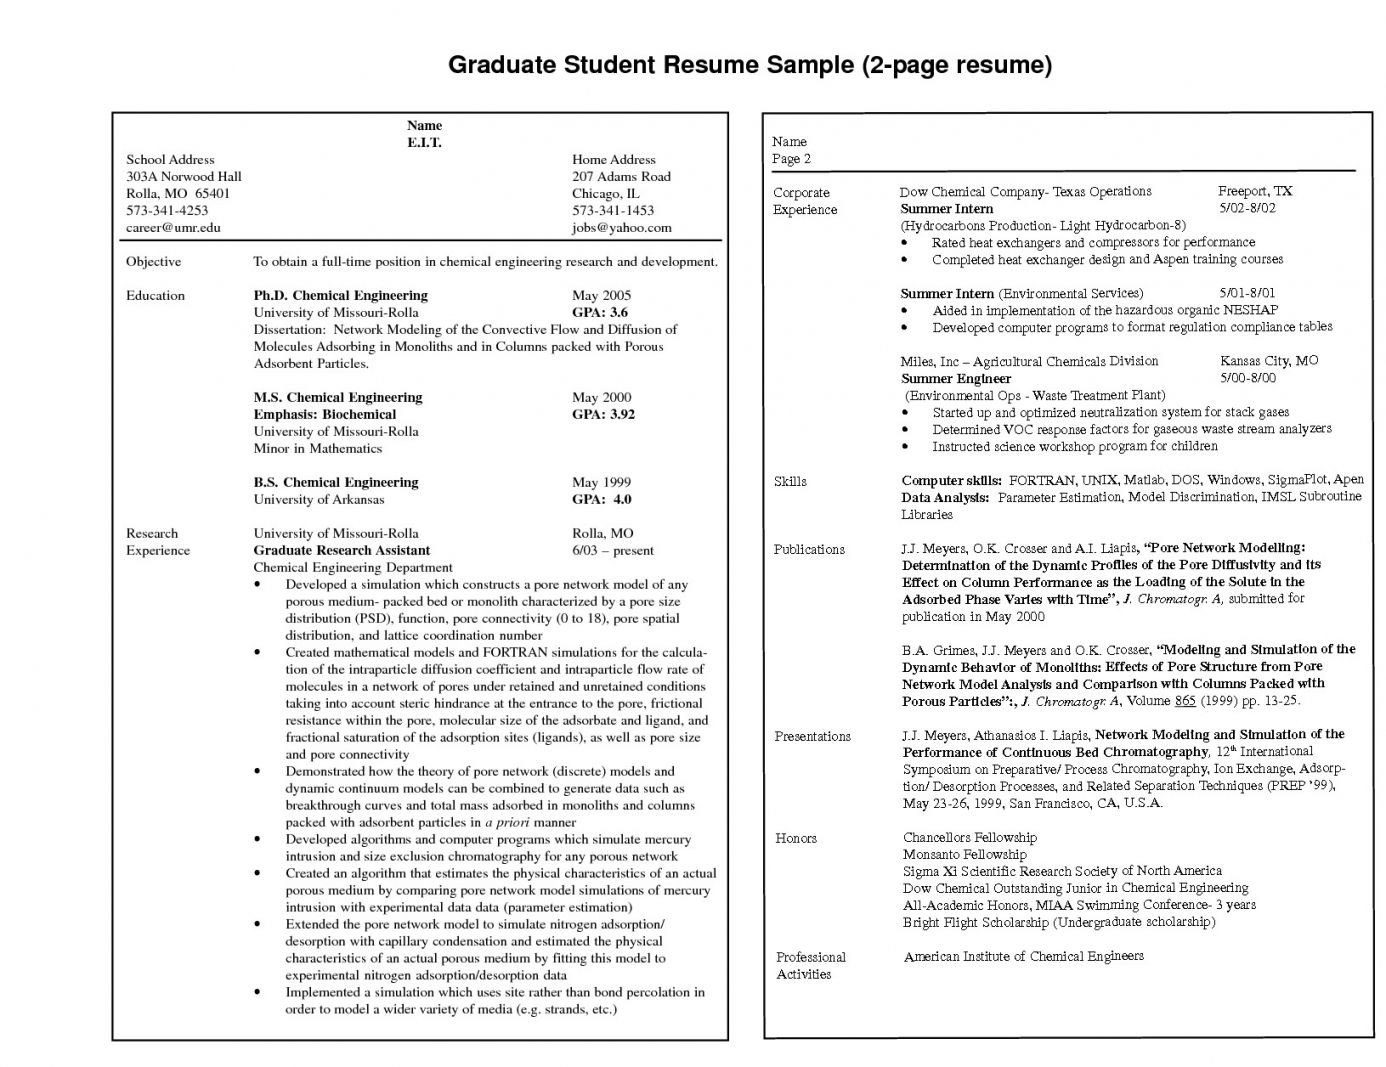 Resume Template for Pages Resume Examples 2 Pages Examples Pages Resume